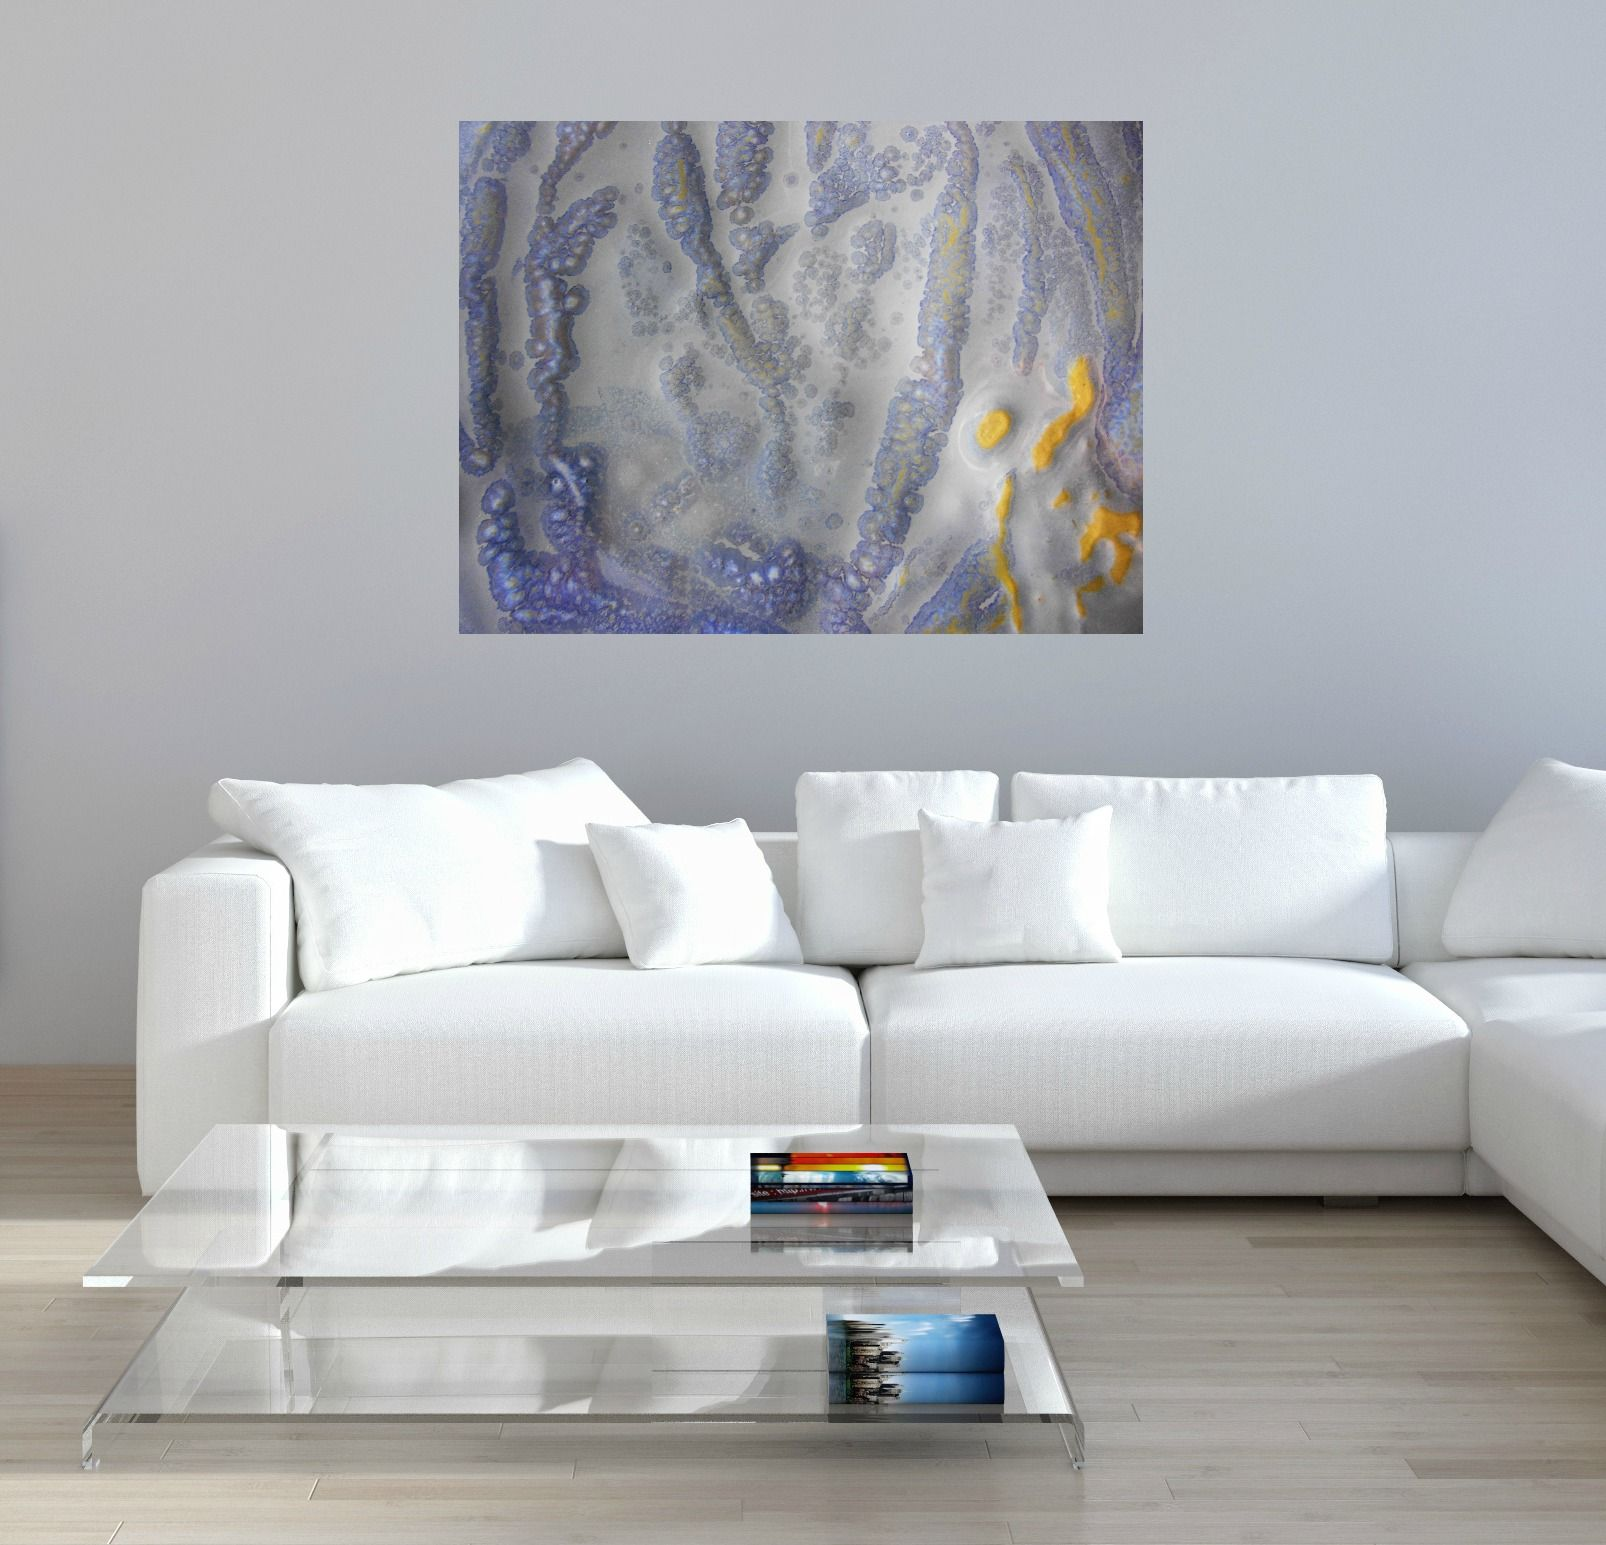 How To Make Your Beach House Beautiful With Oversized Artwork